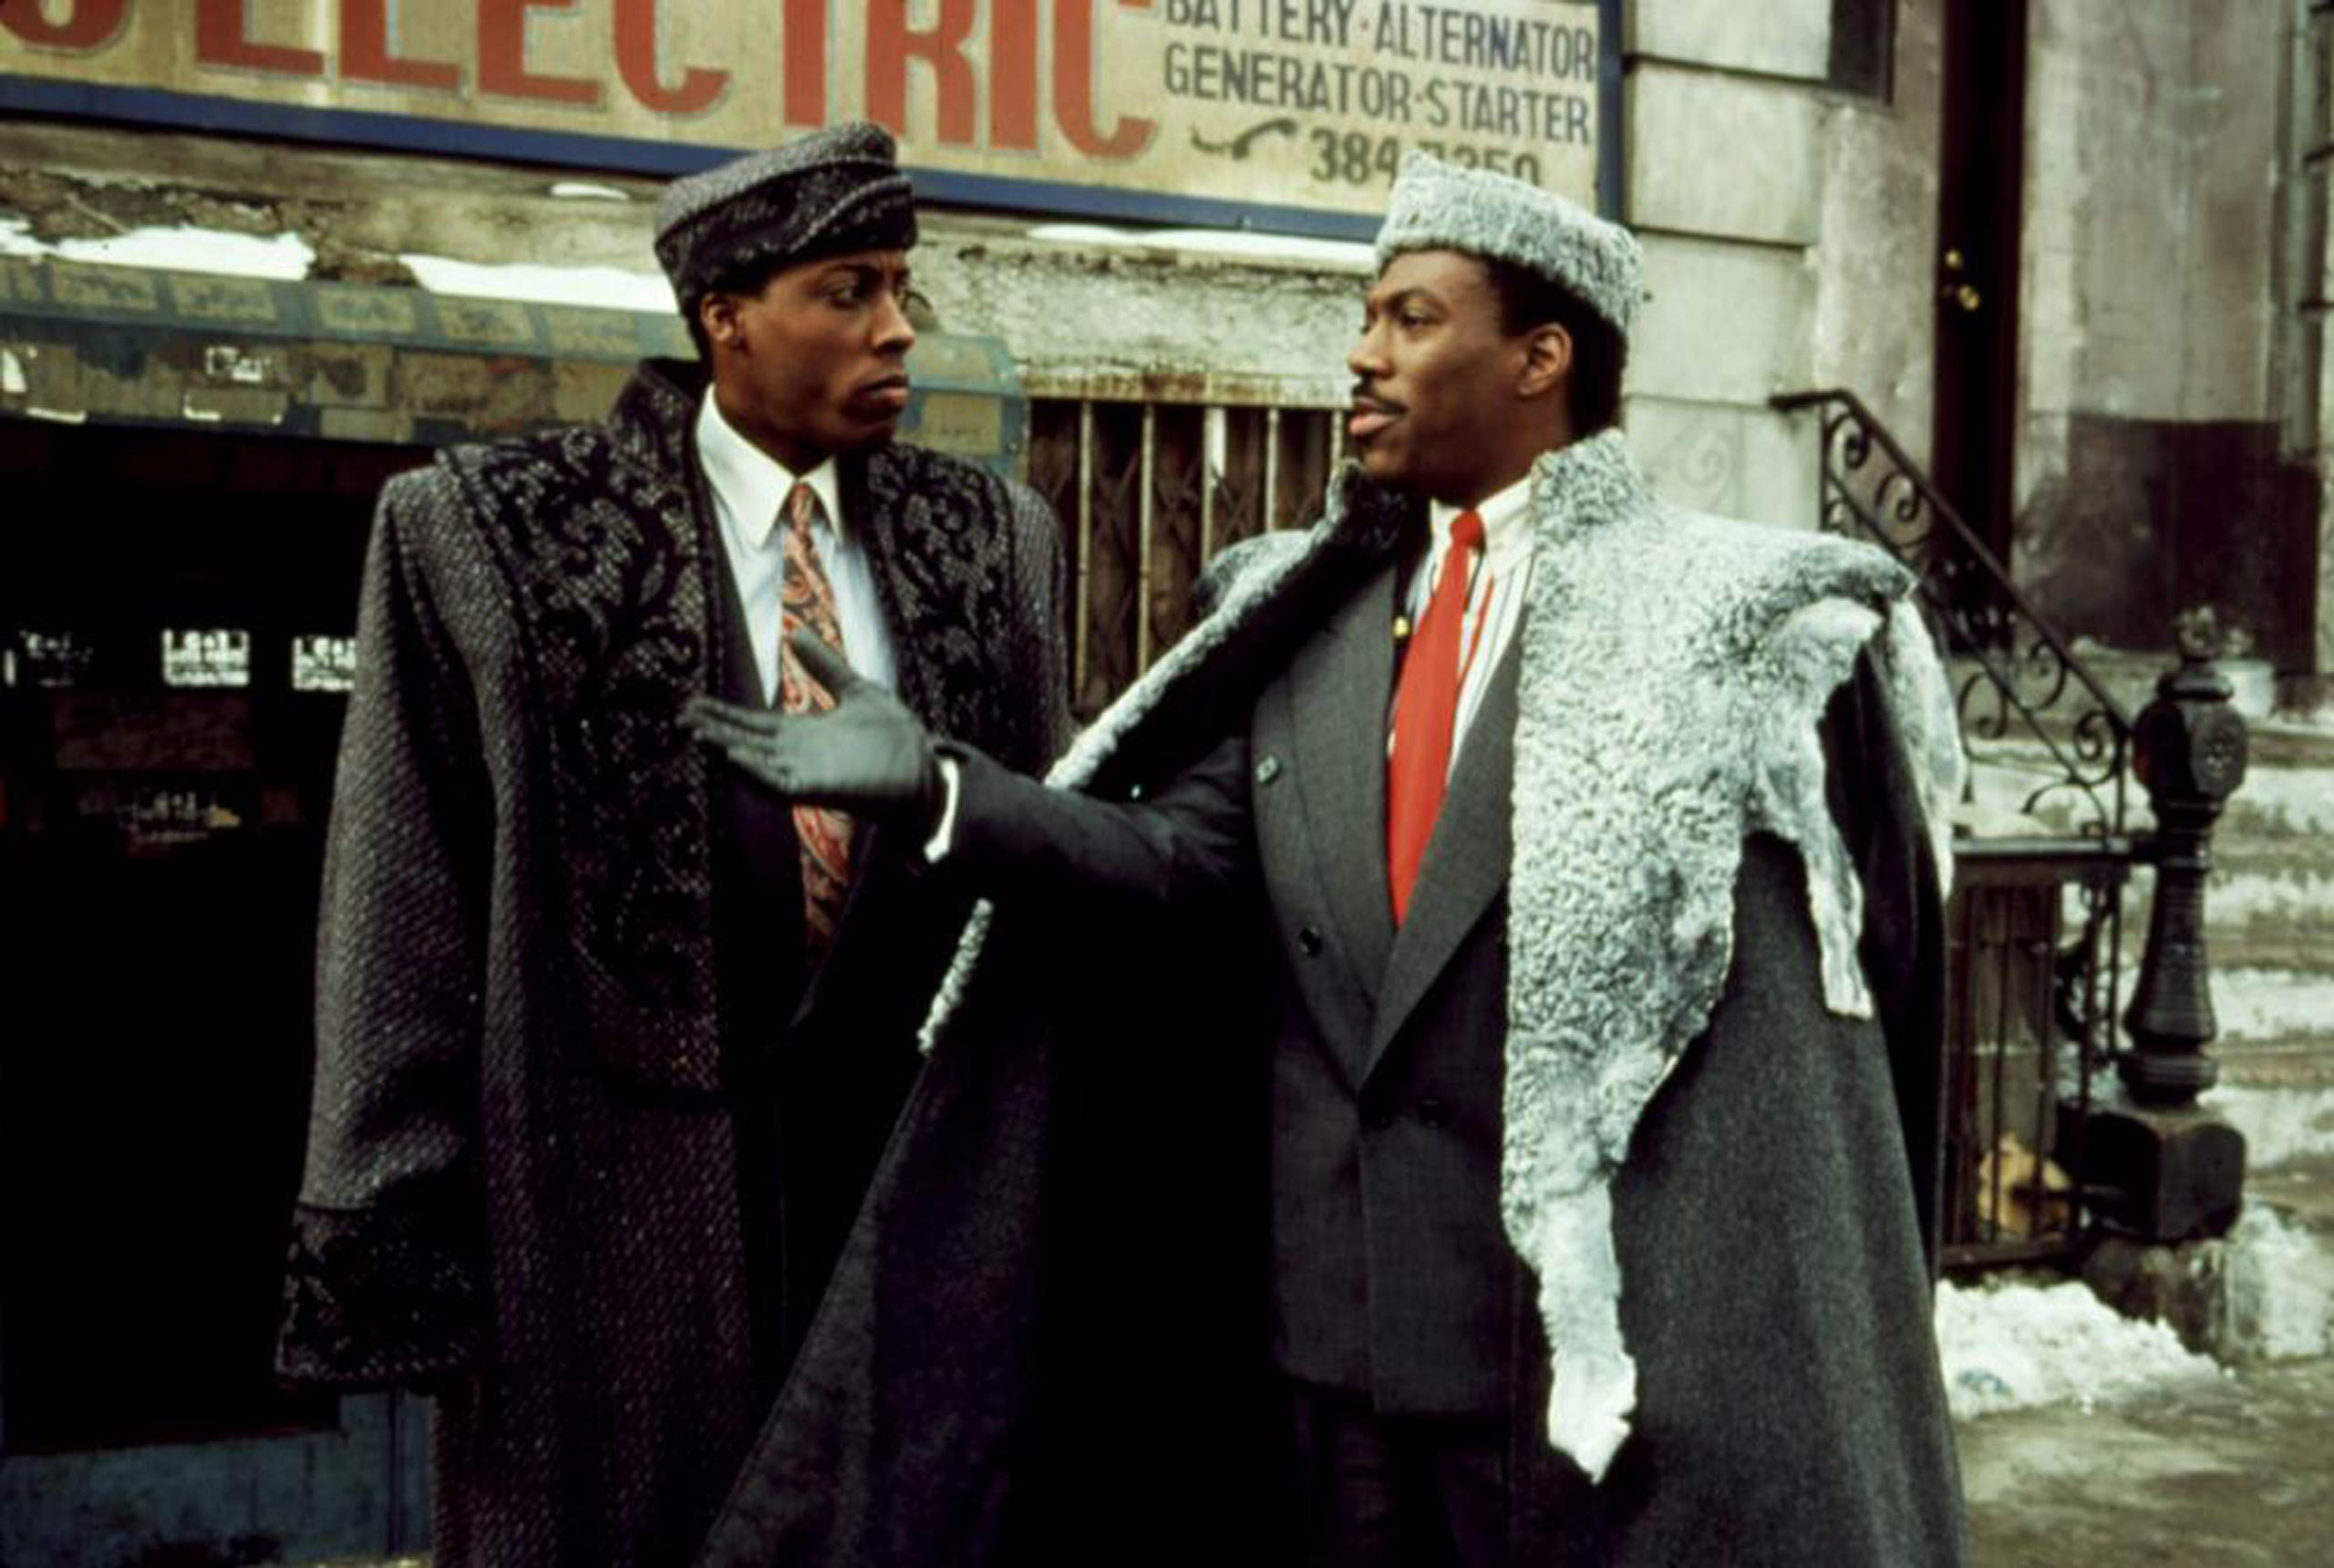 13. Coming to America - $128,152,301